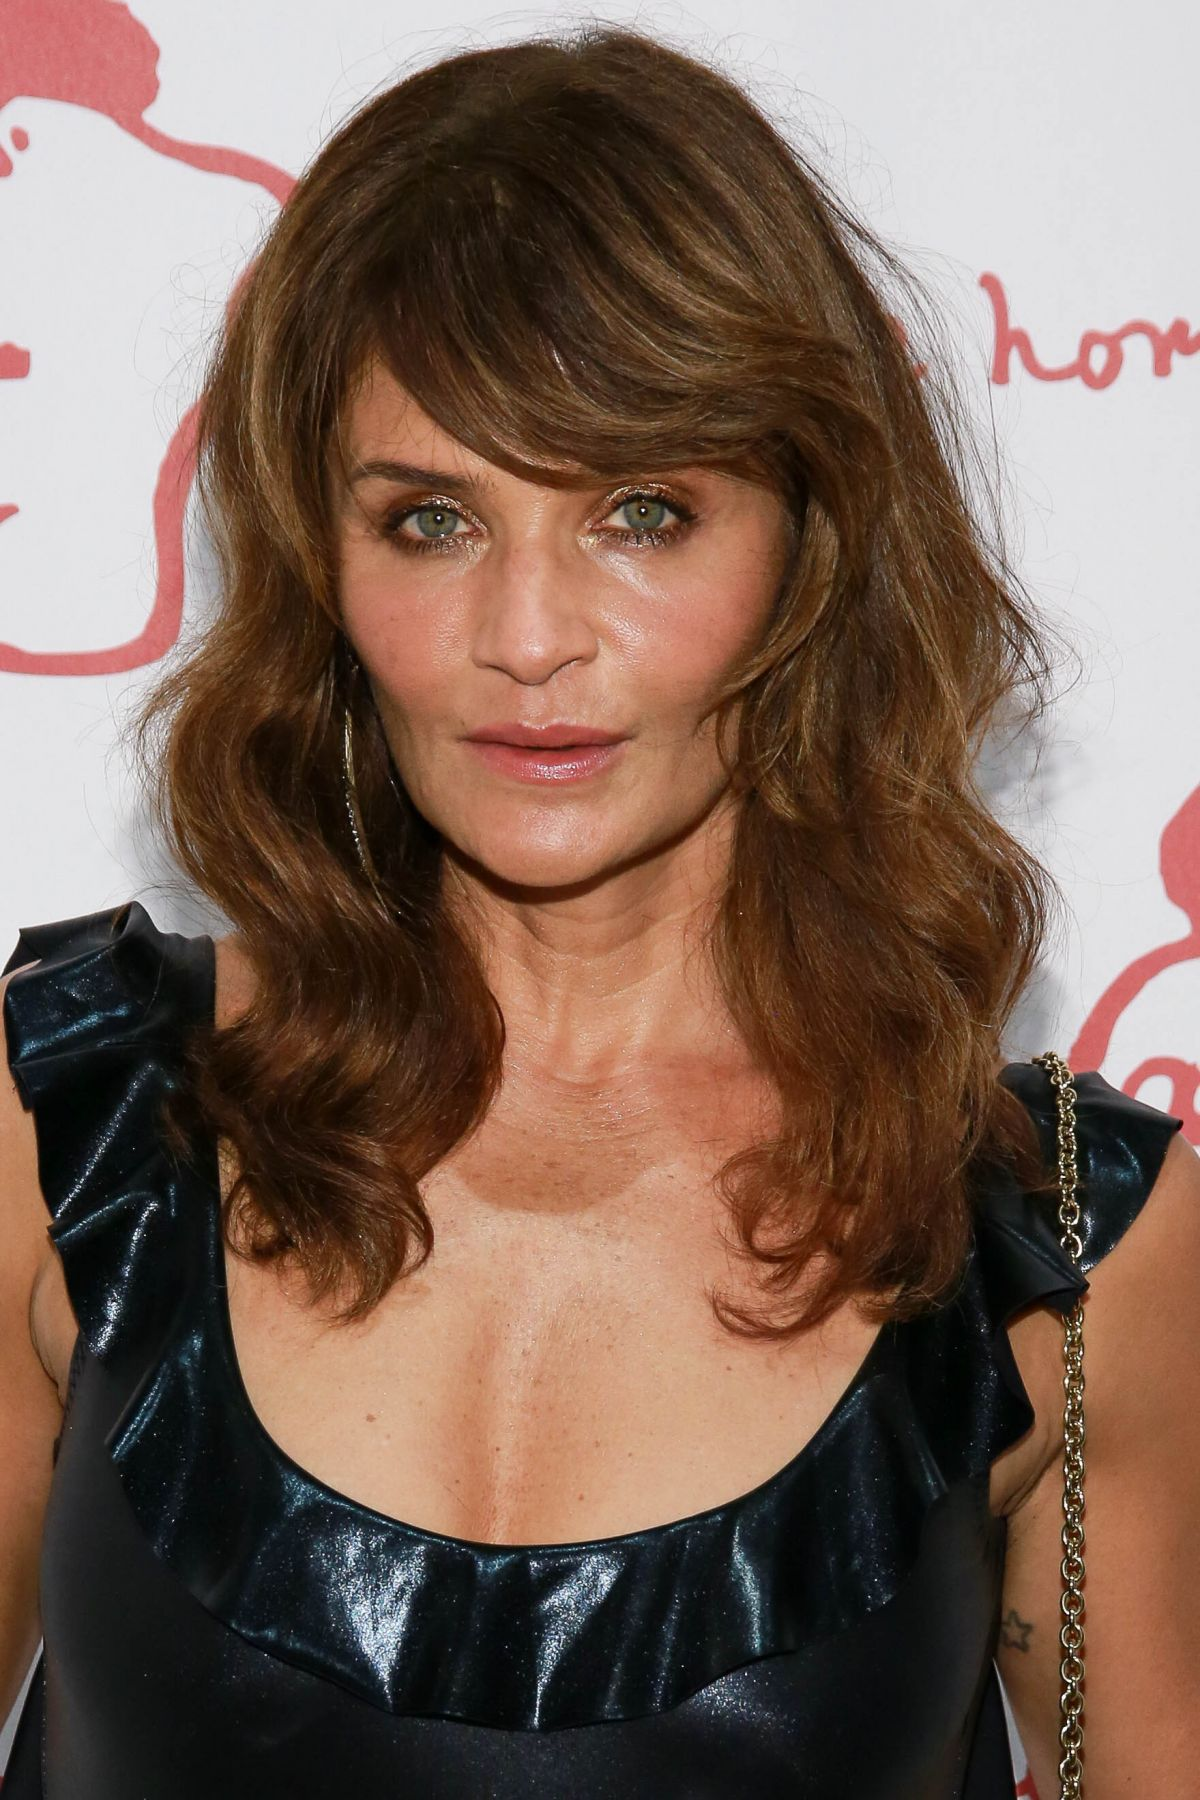 HELENA CHRISTENSEN at Take Home A Nude Art Party and